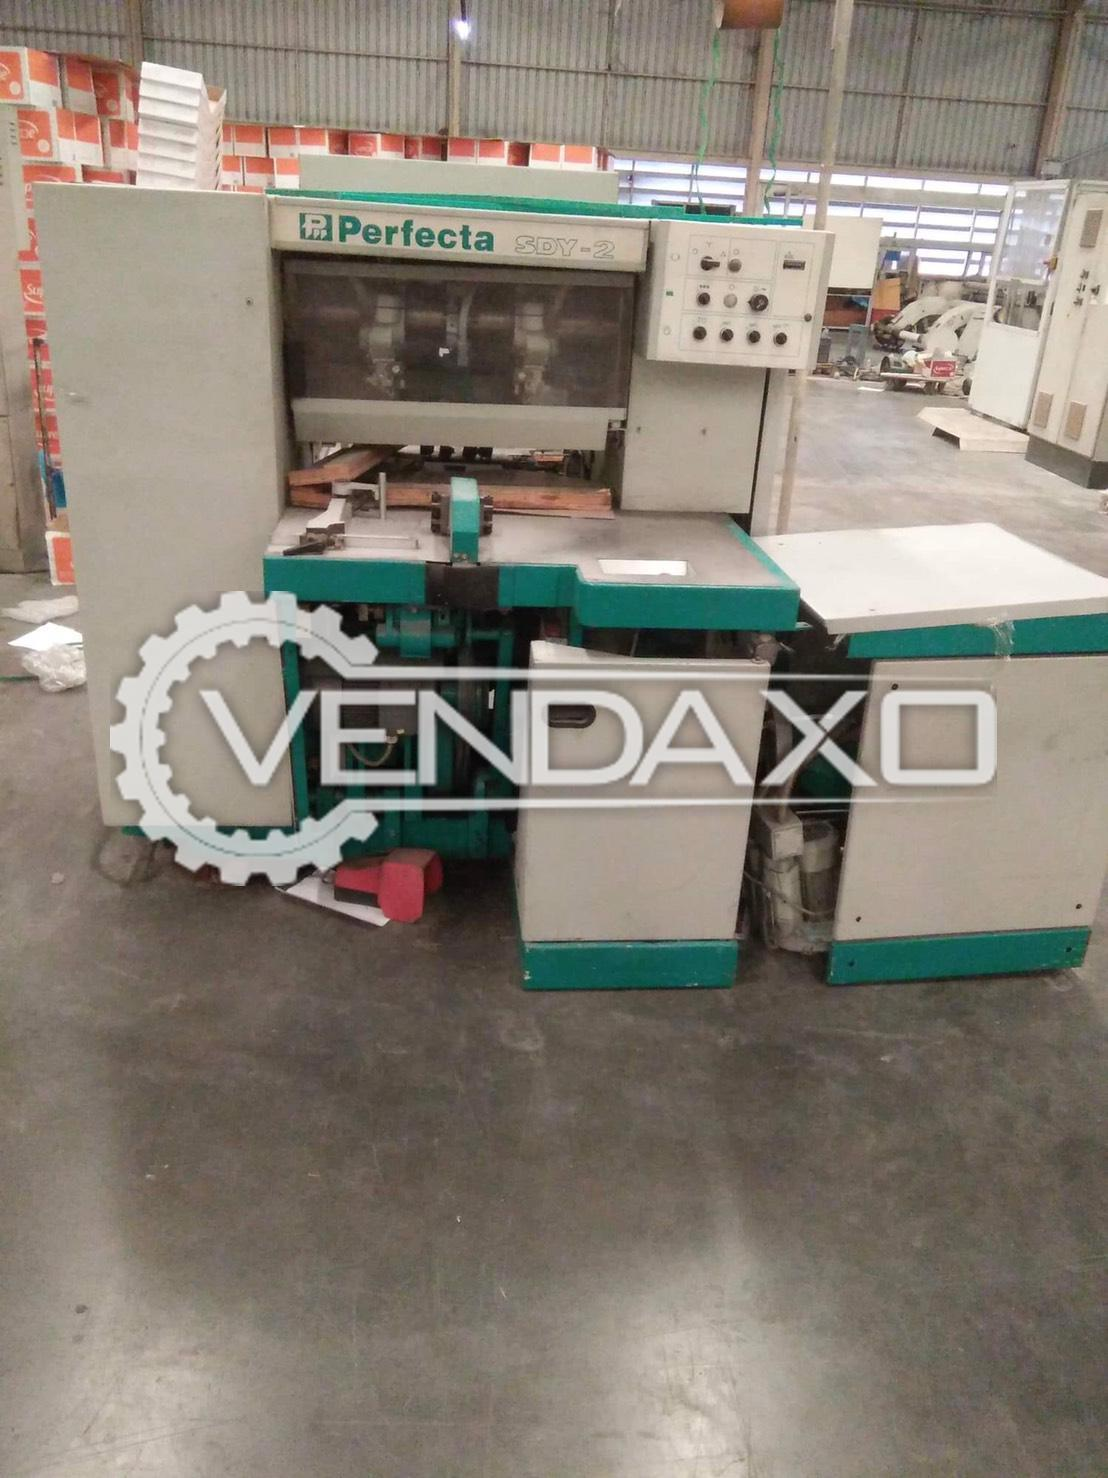 Perfecta SDY 2 Trimmer Machine - 3 Knife, 2001 Model